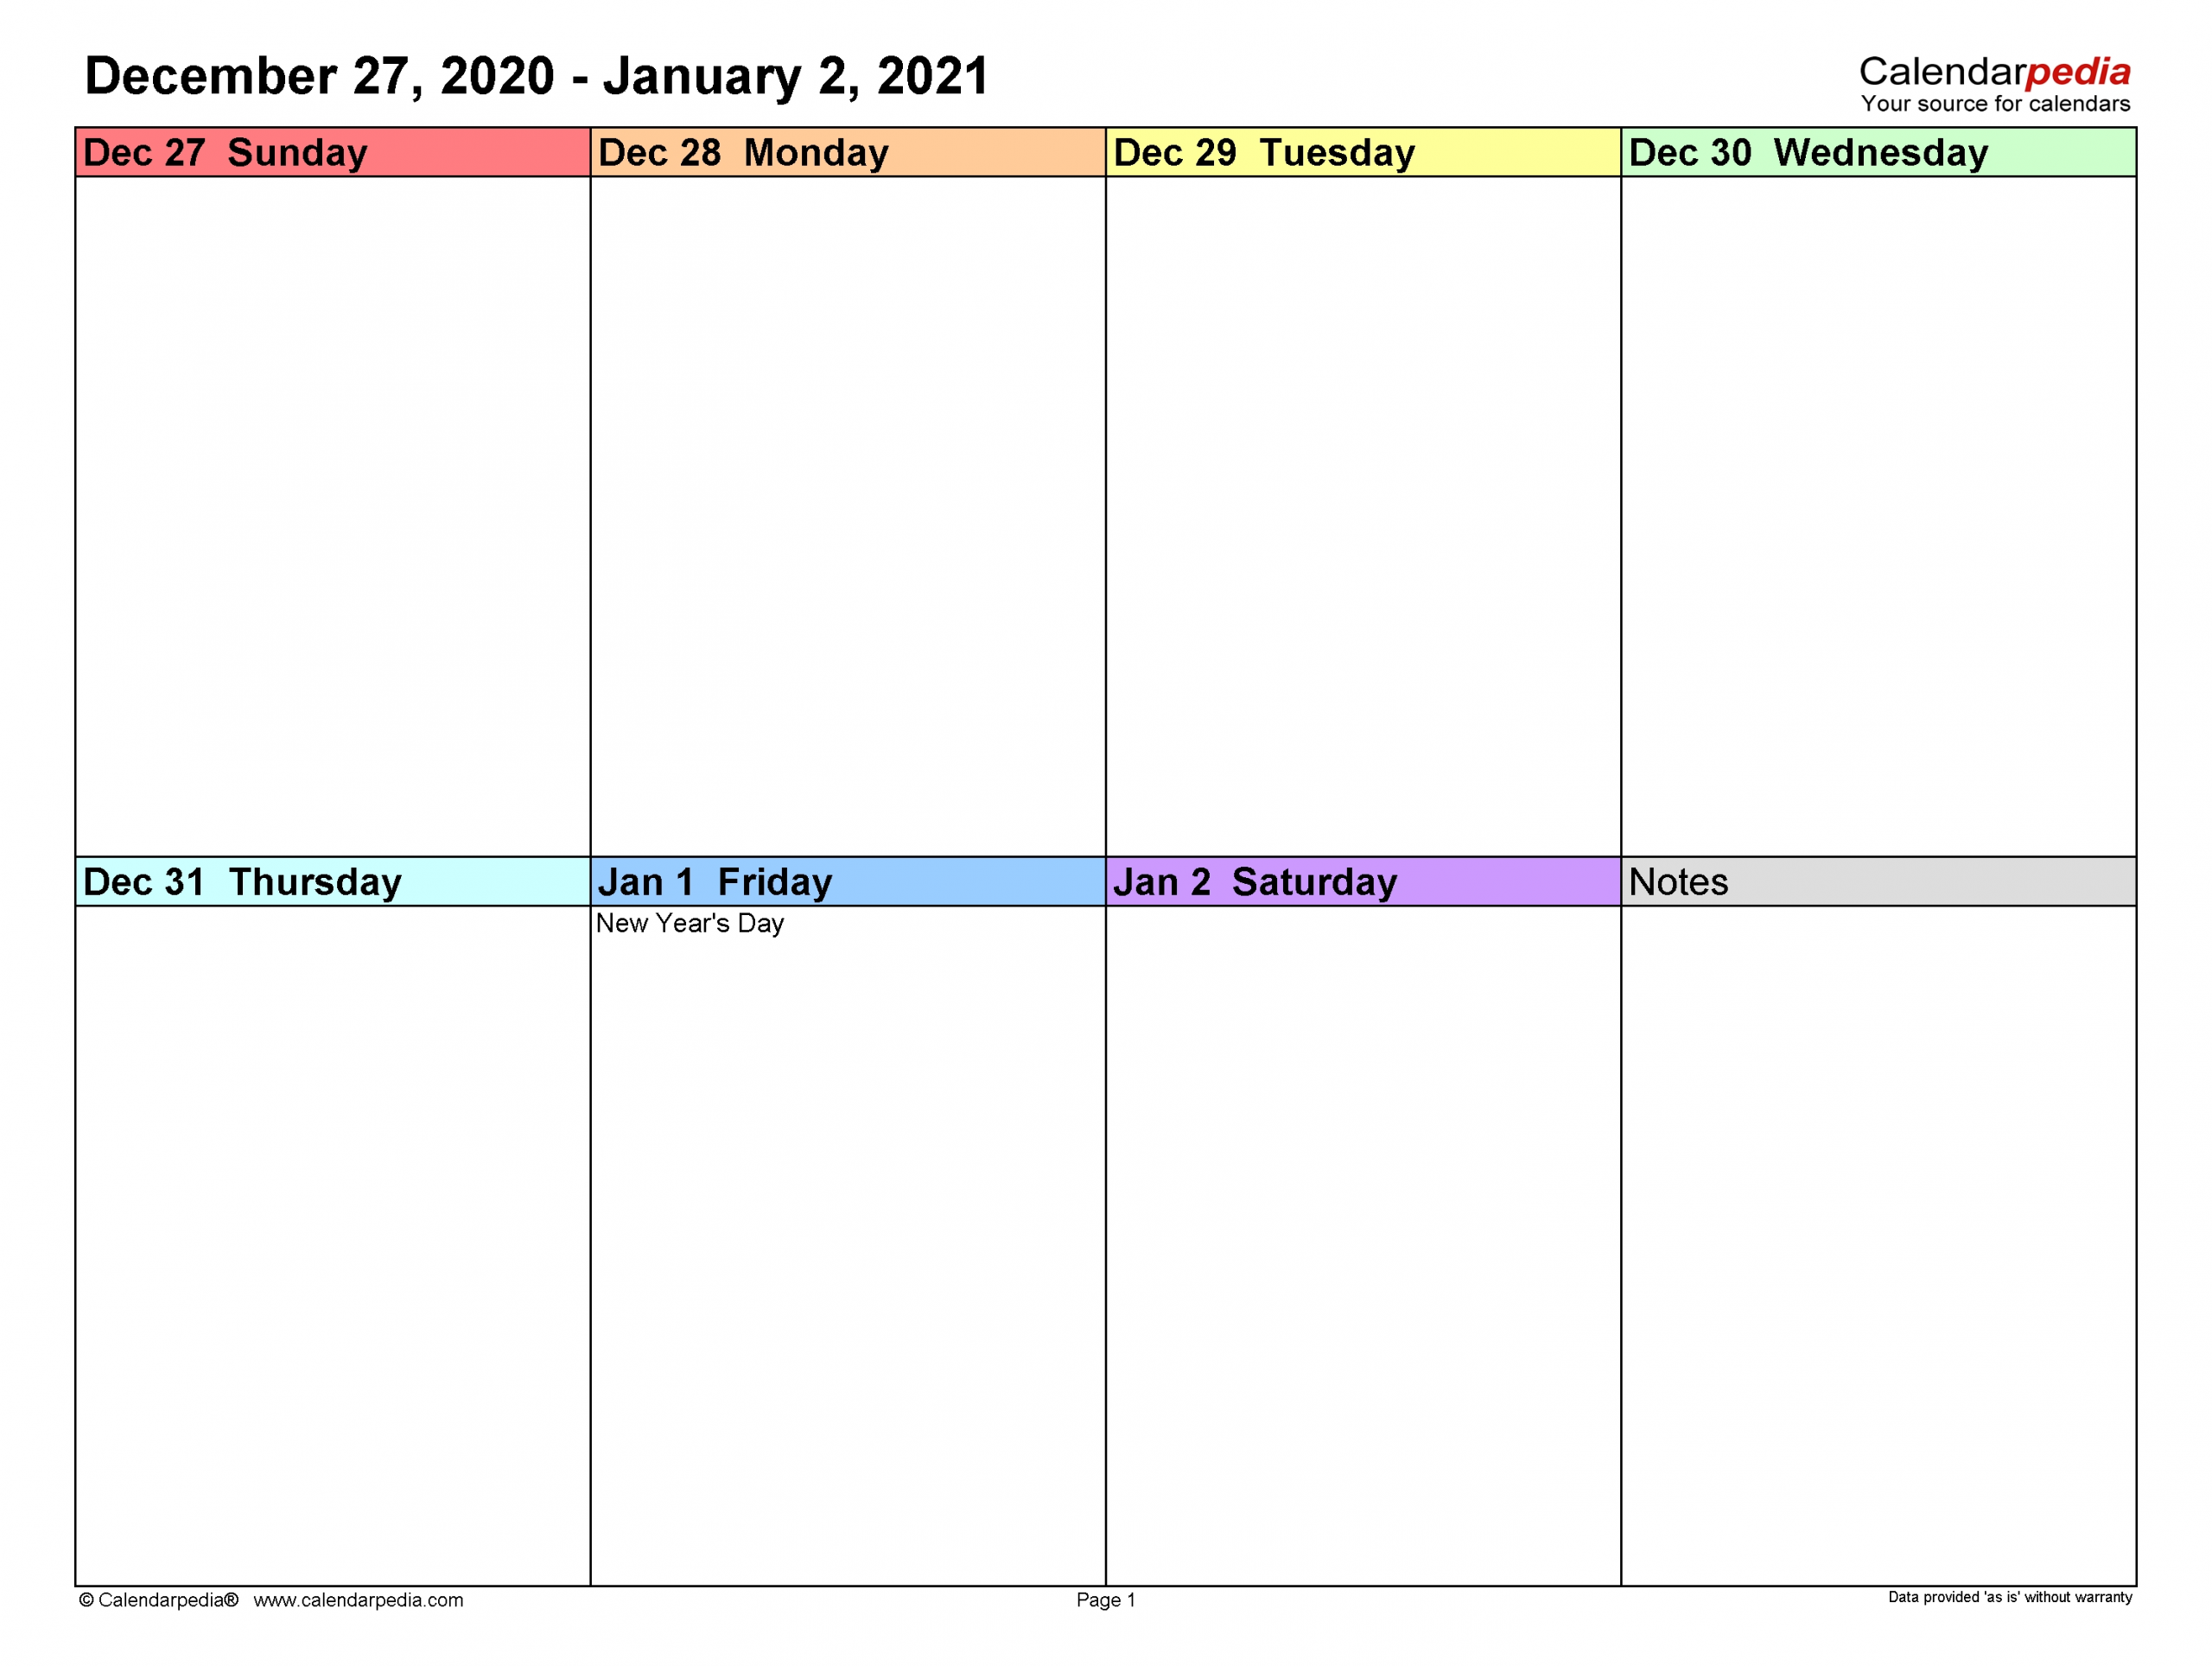 Weekly Calendars 2021 For Pdf - 12 Free Printable Templates  5 Day Week Printable Calendars 2021